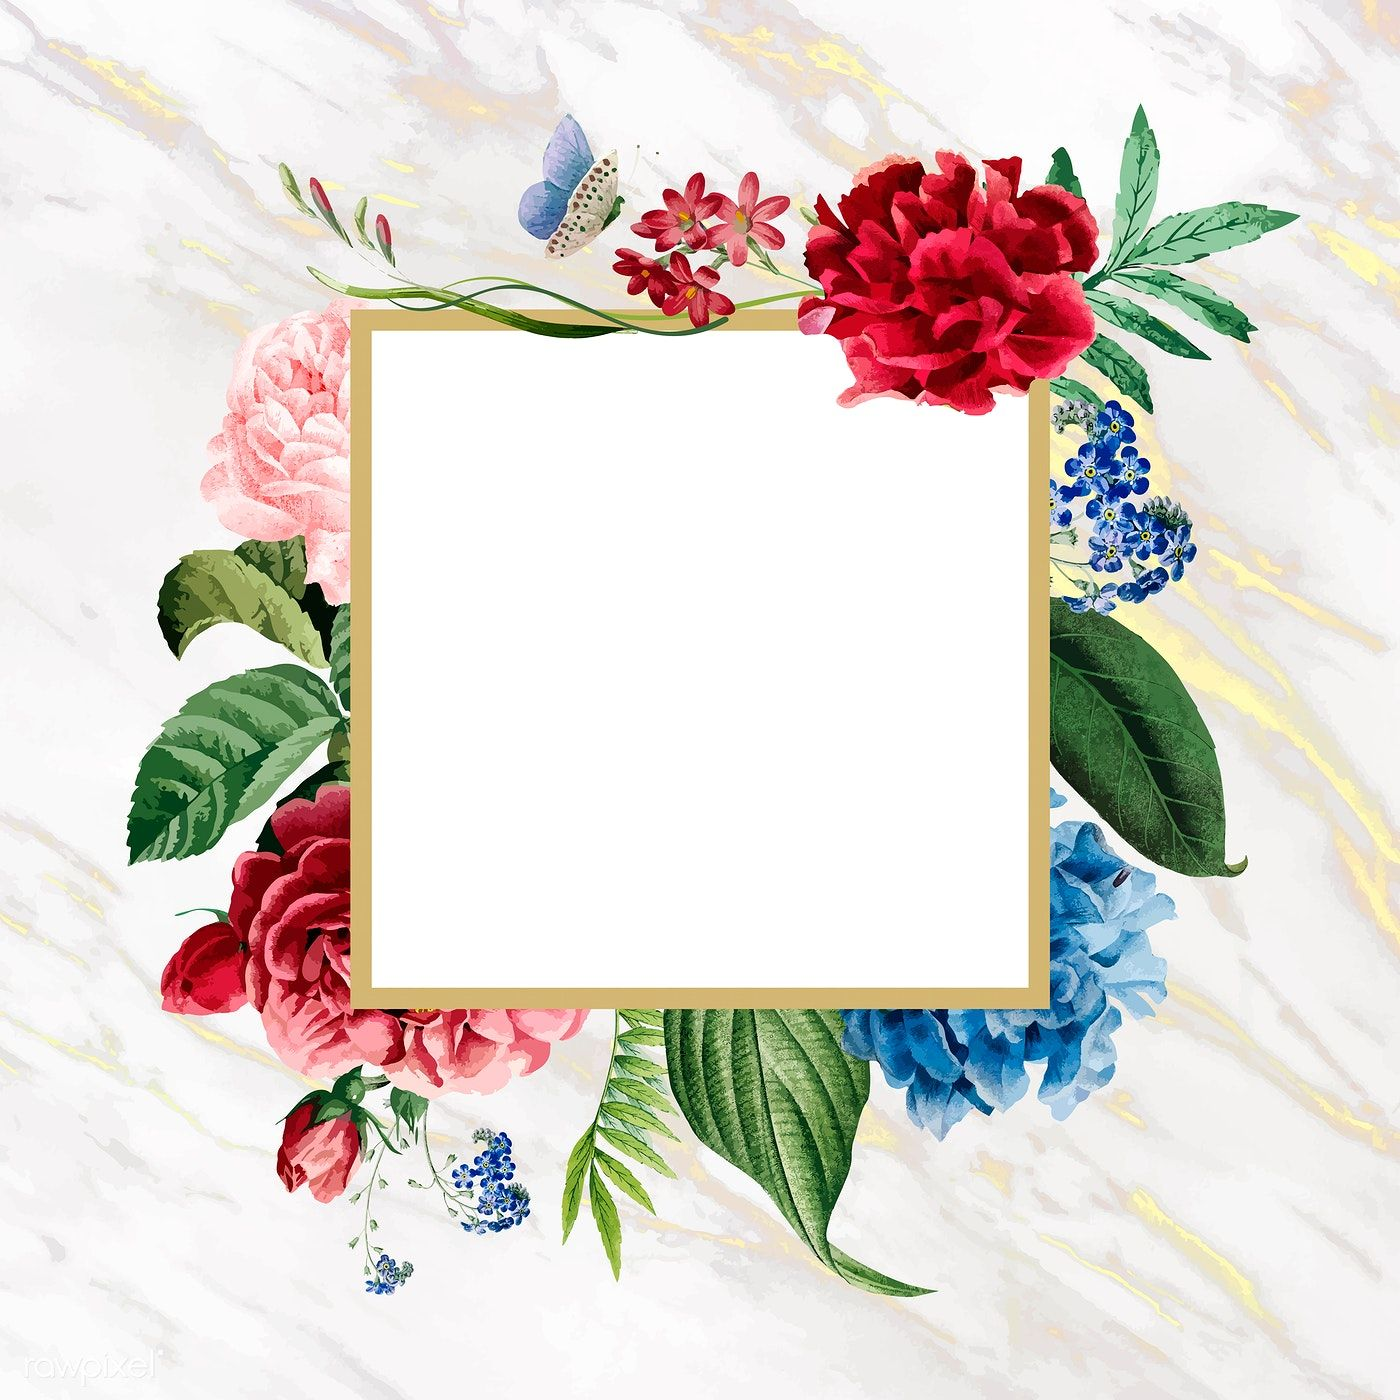 Download Premium Vector Of Floral Square Frame On A Marble Background Marble Background Flower Background Wallpaper Floral Squares